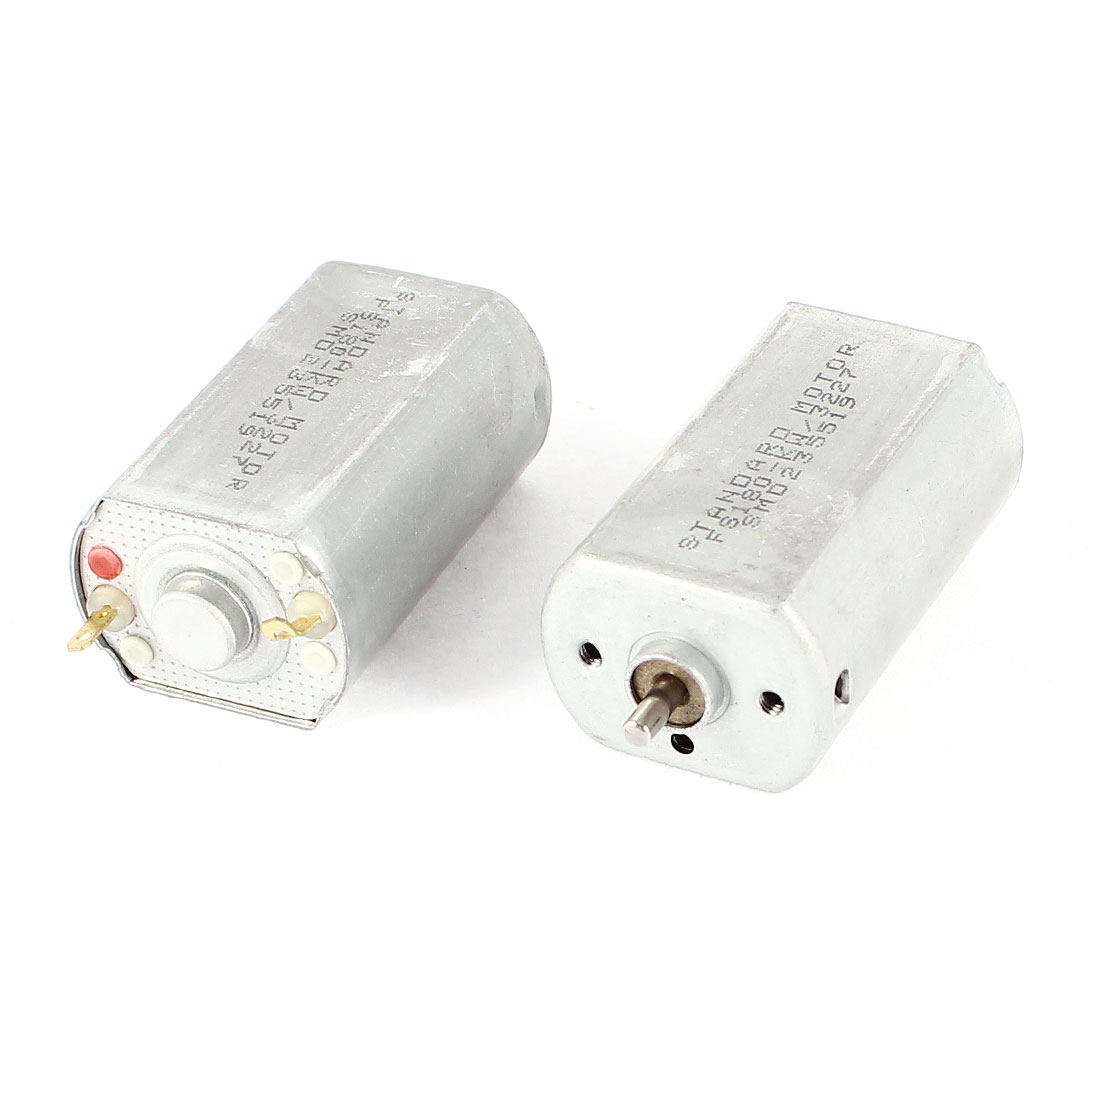 2 Pcs DC 12V/11400RPM 6V/5700RPM Motor for Car Model Toys DIY